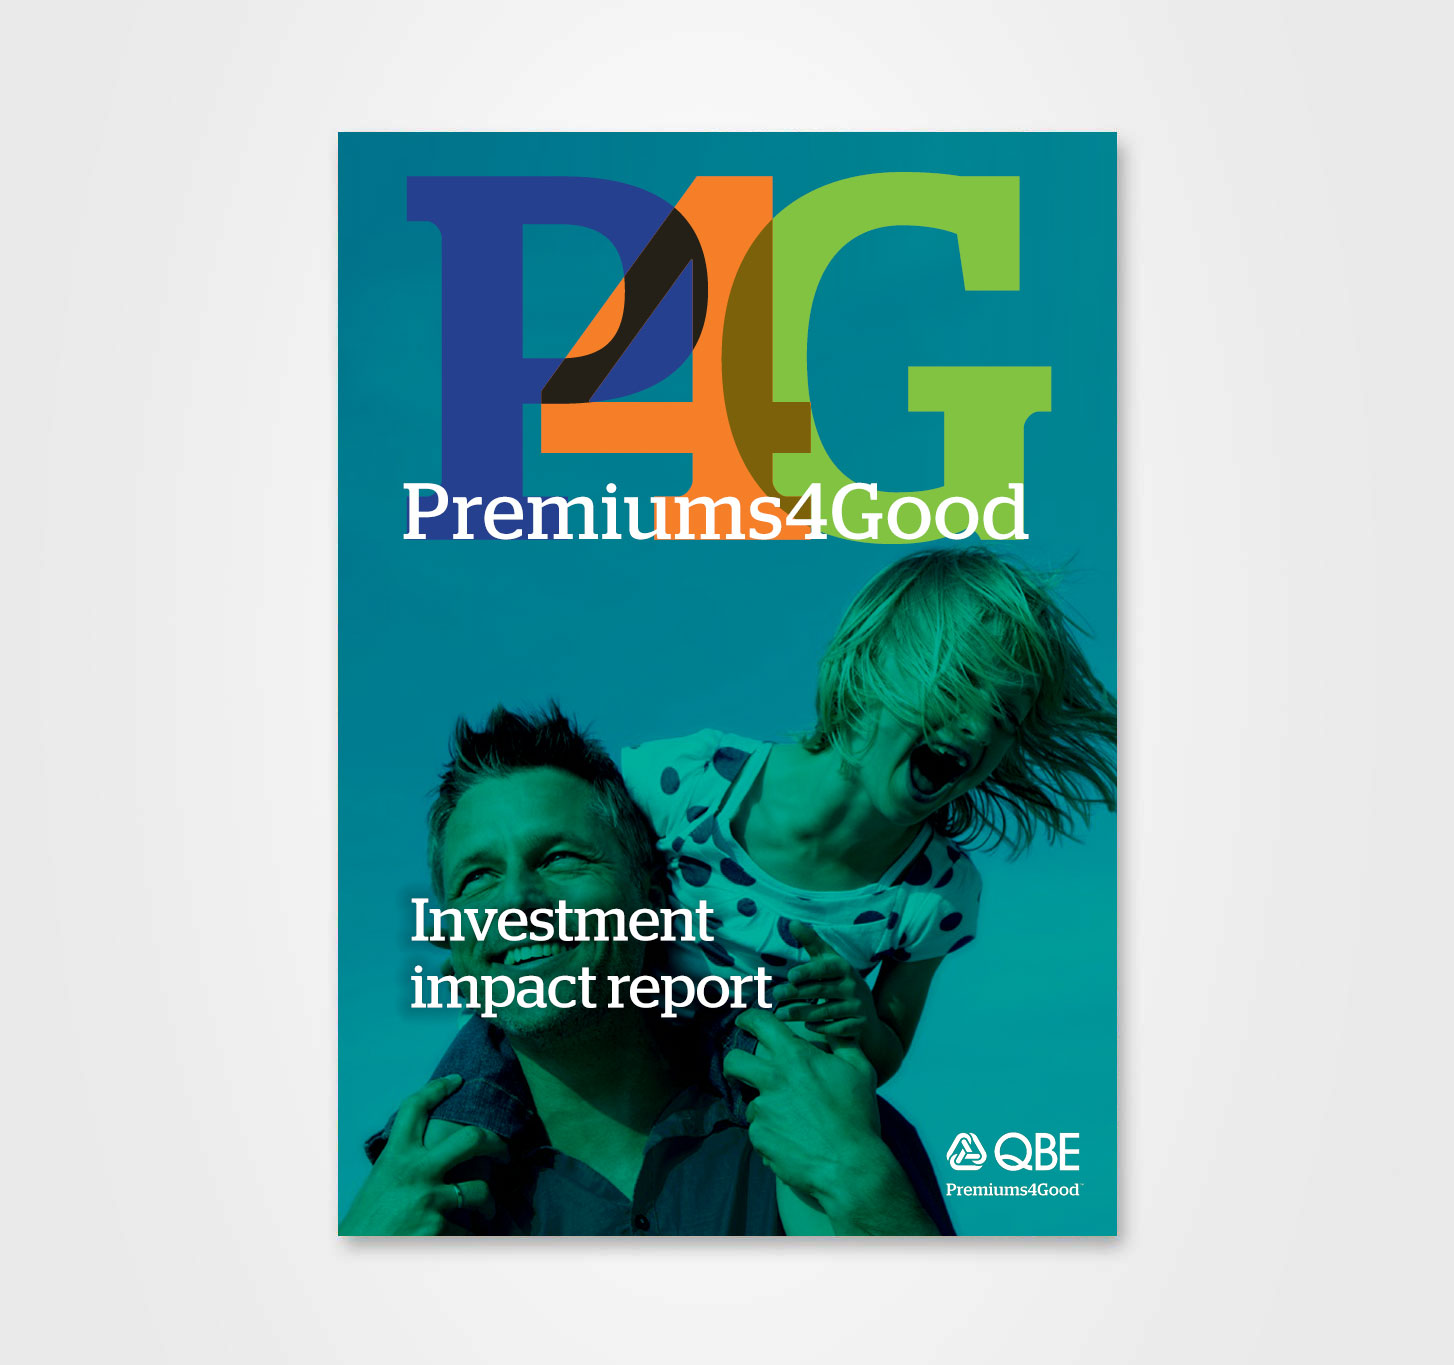 Find out which projects your premiums are helping